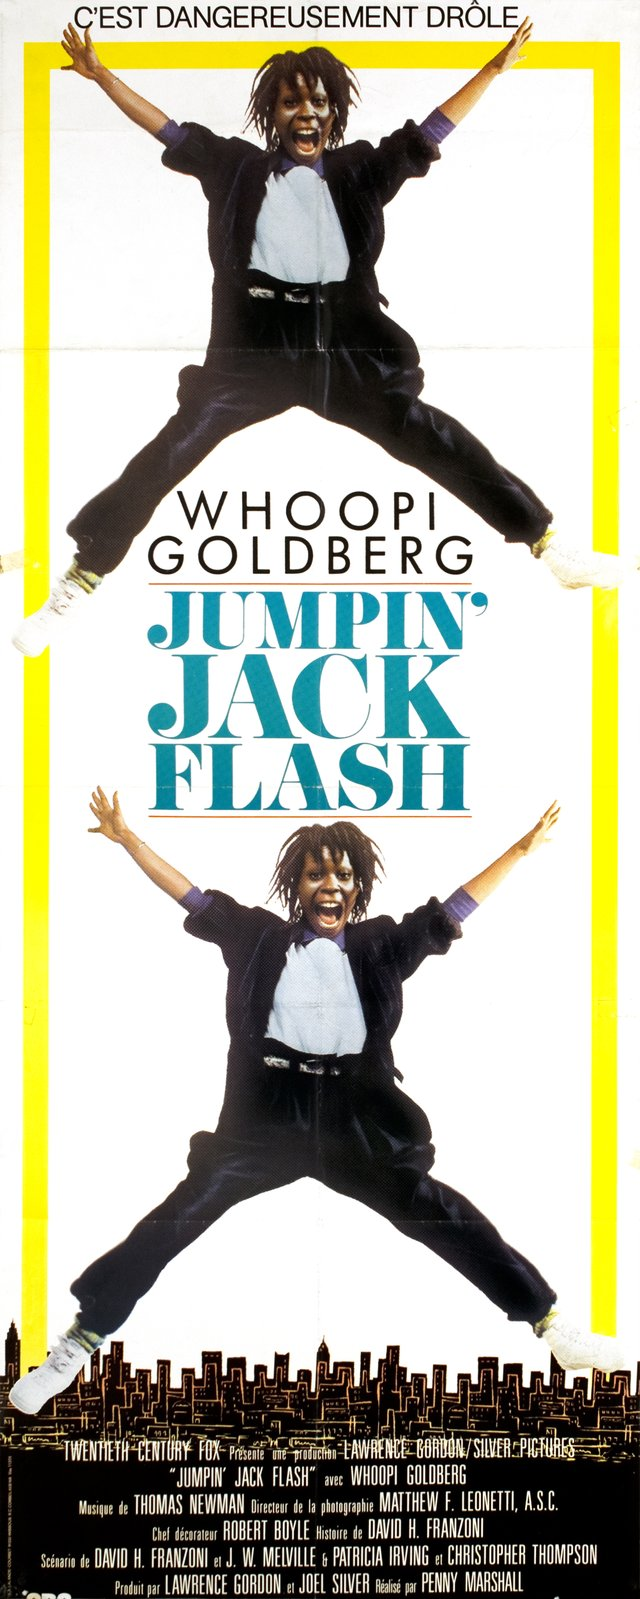 """Jumpin' Jack Flash, dangereusement drôle!"", movie with Woopi Goldberg"